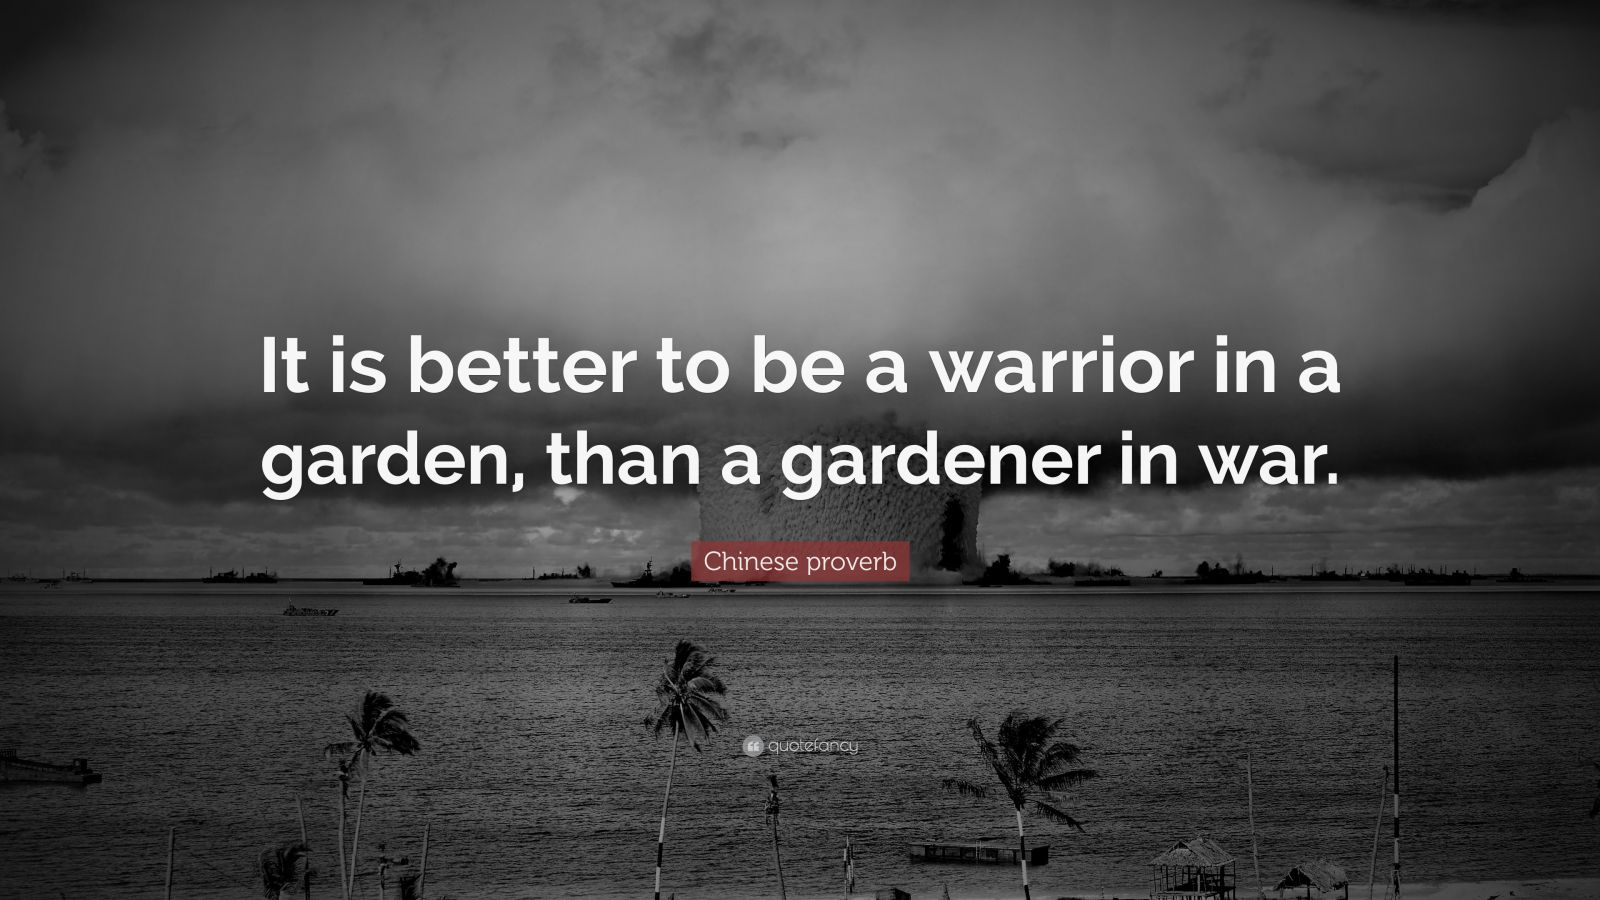 Swami Vivekananda Quotes Wallpaper Chinese Proverb Quote It Is Better To Be A Warrior In A